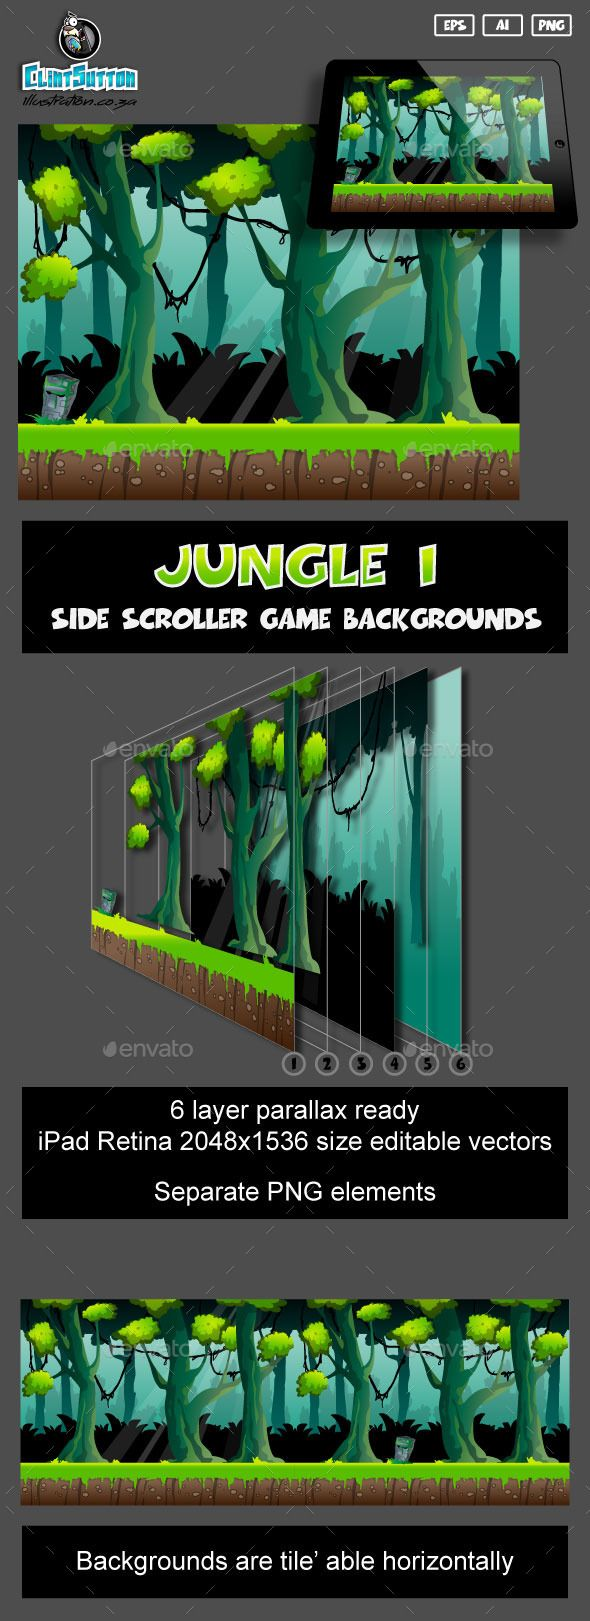 Jungle1 Game Background Download from here: graphicriver.net / …   – Backgrounds/Environment